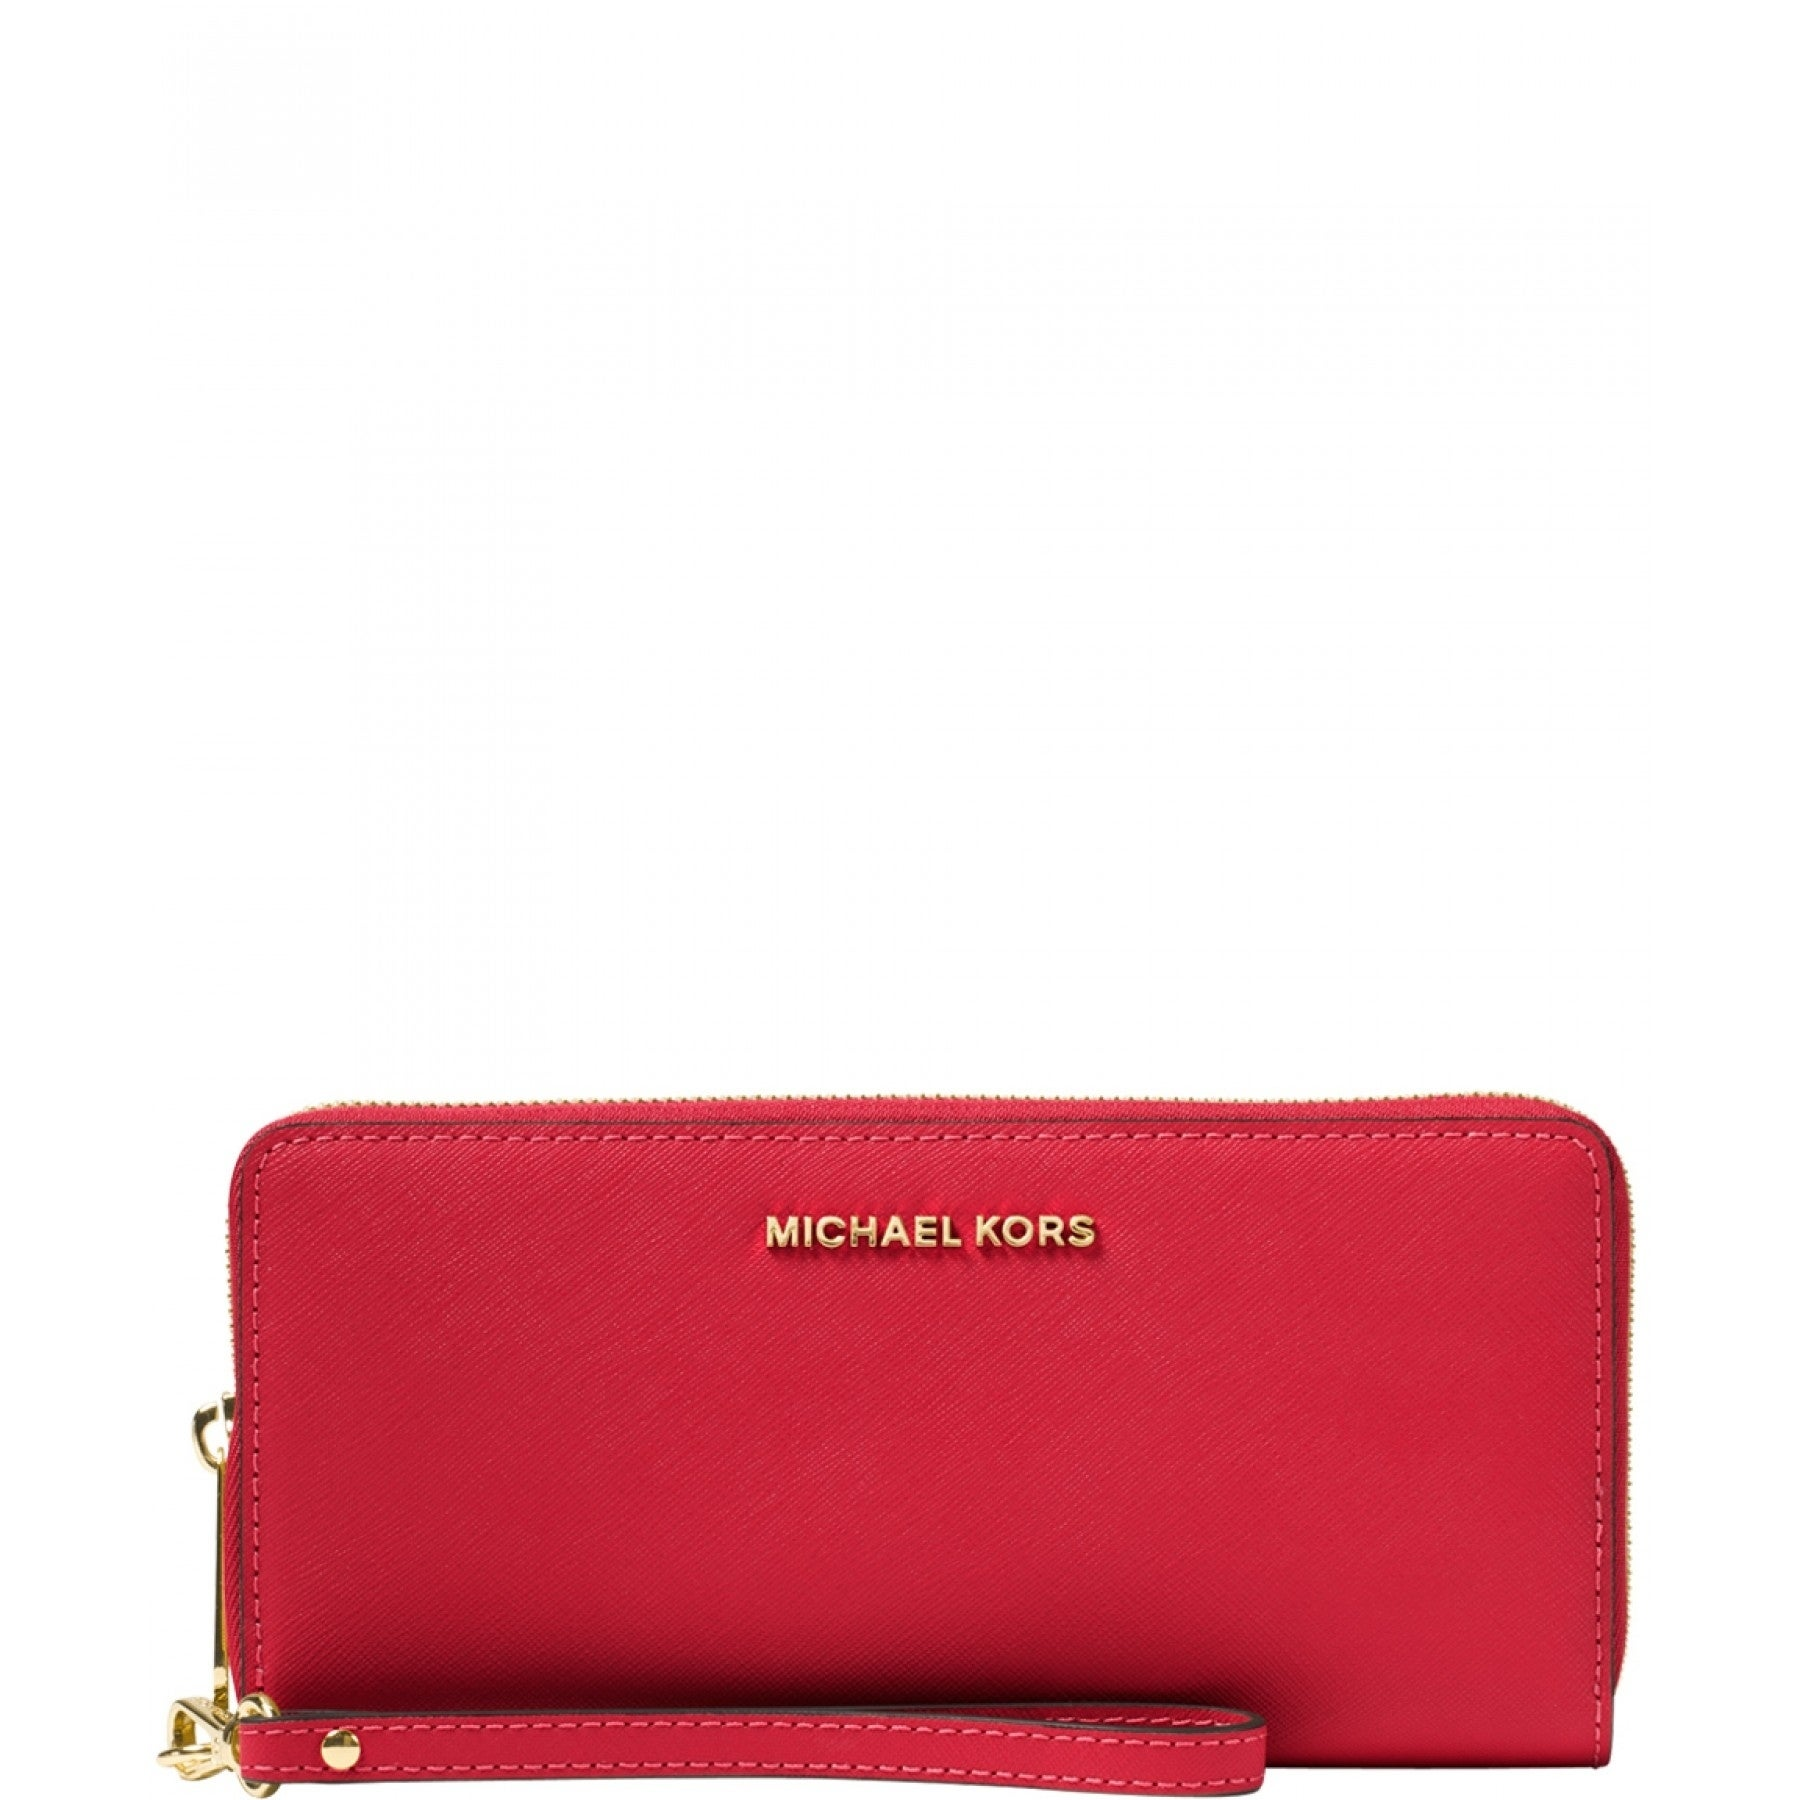 161d2f032a68 MICHAEL Michael Kors Jet Set Travel Continental Wallet Bright Red/Gold  hardware